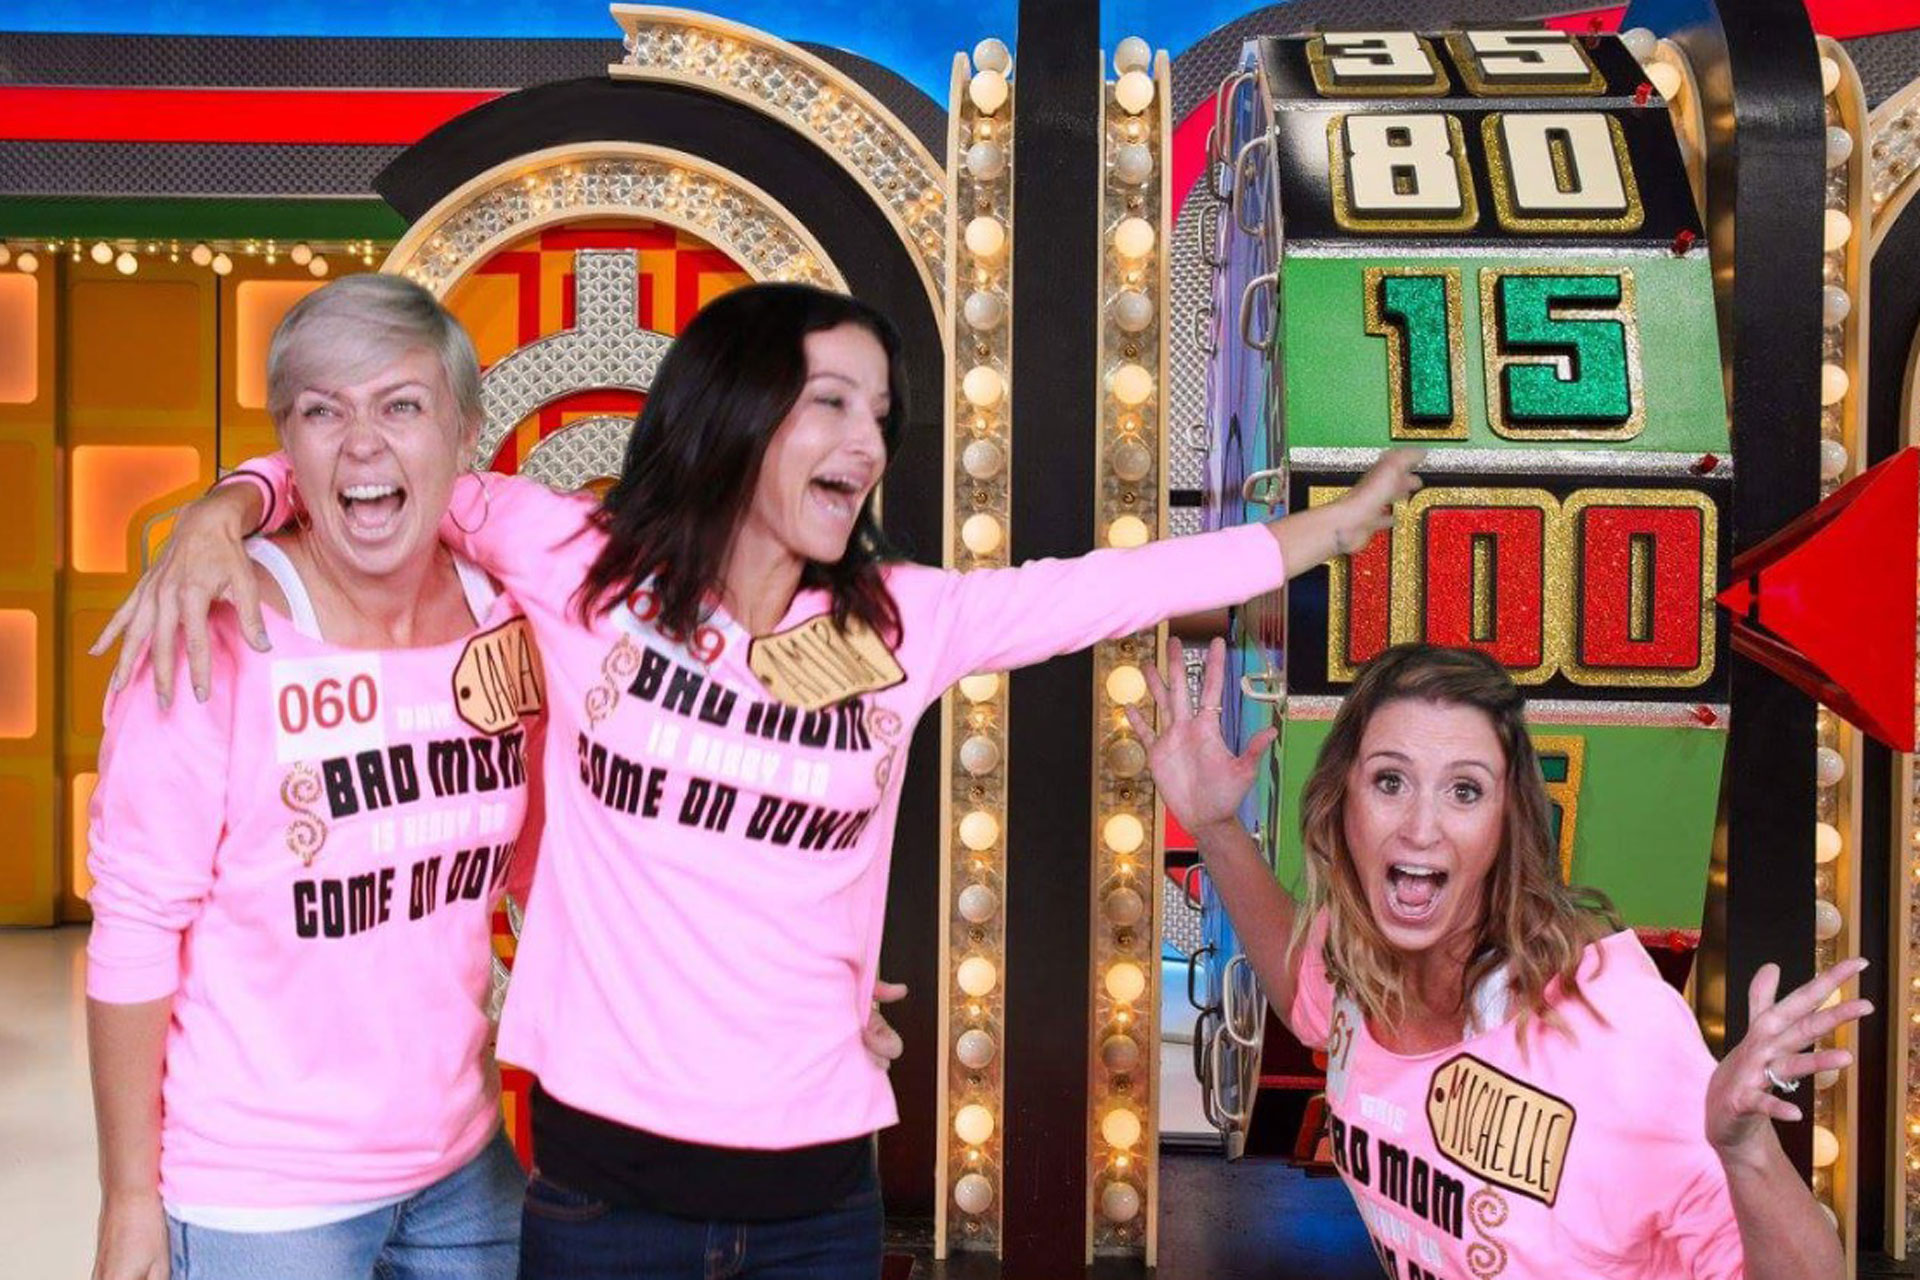 the price is right, bad moms christmas, #badmomsxmas, moms day out, live taping, cbs studios